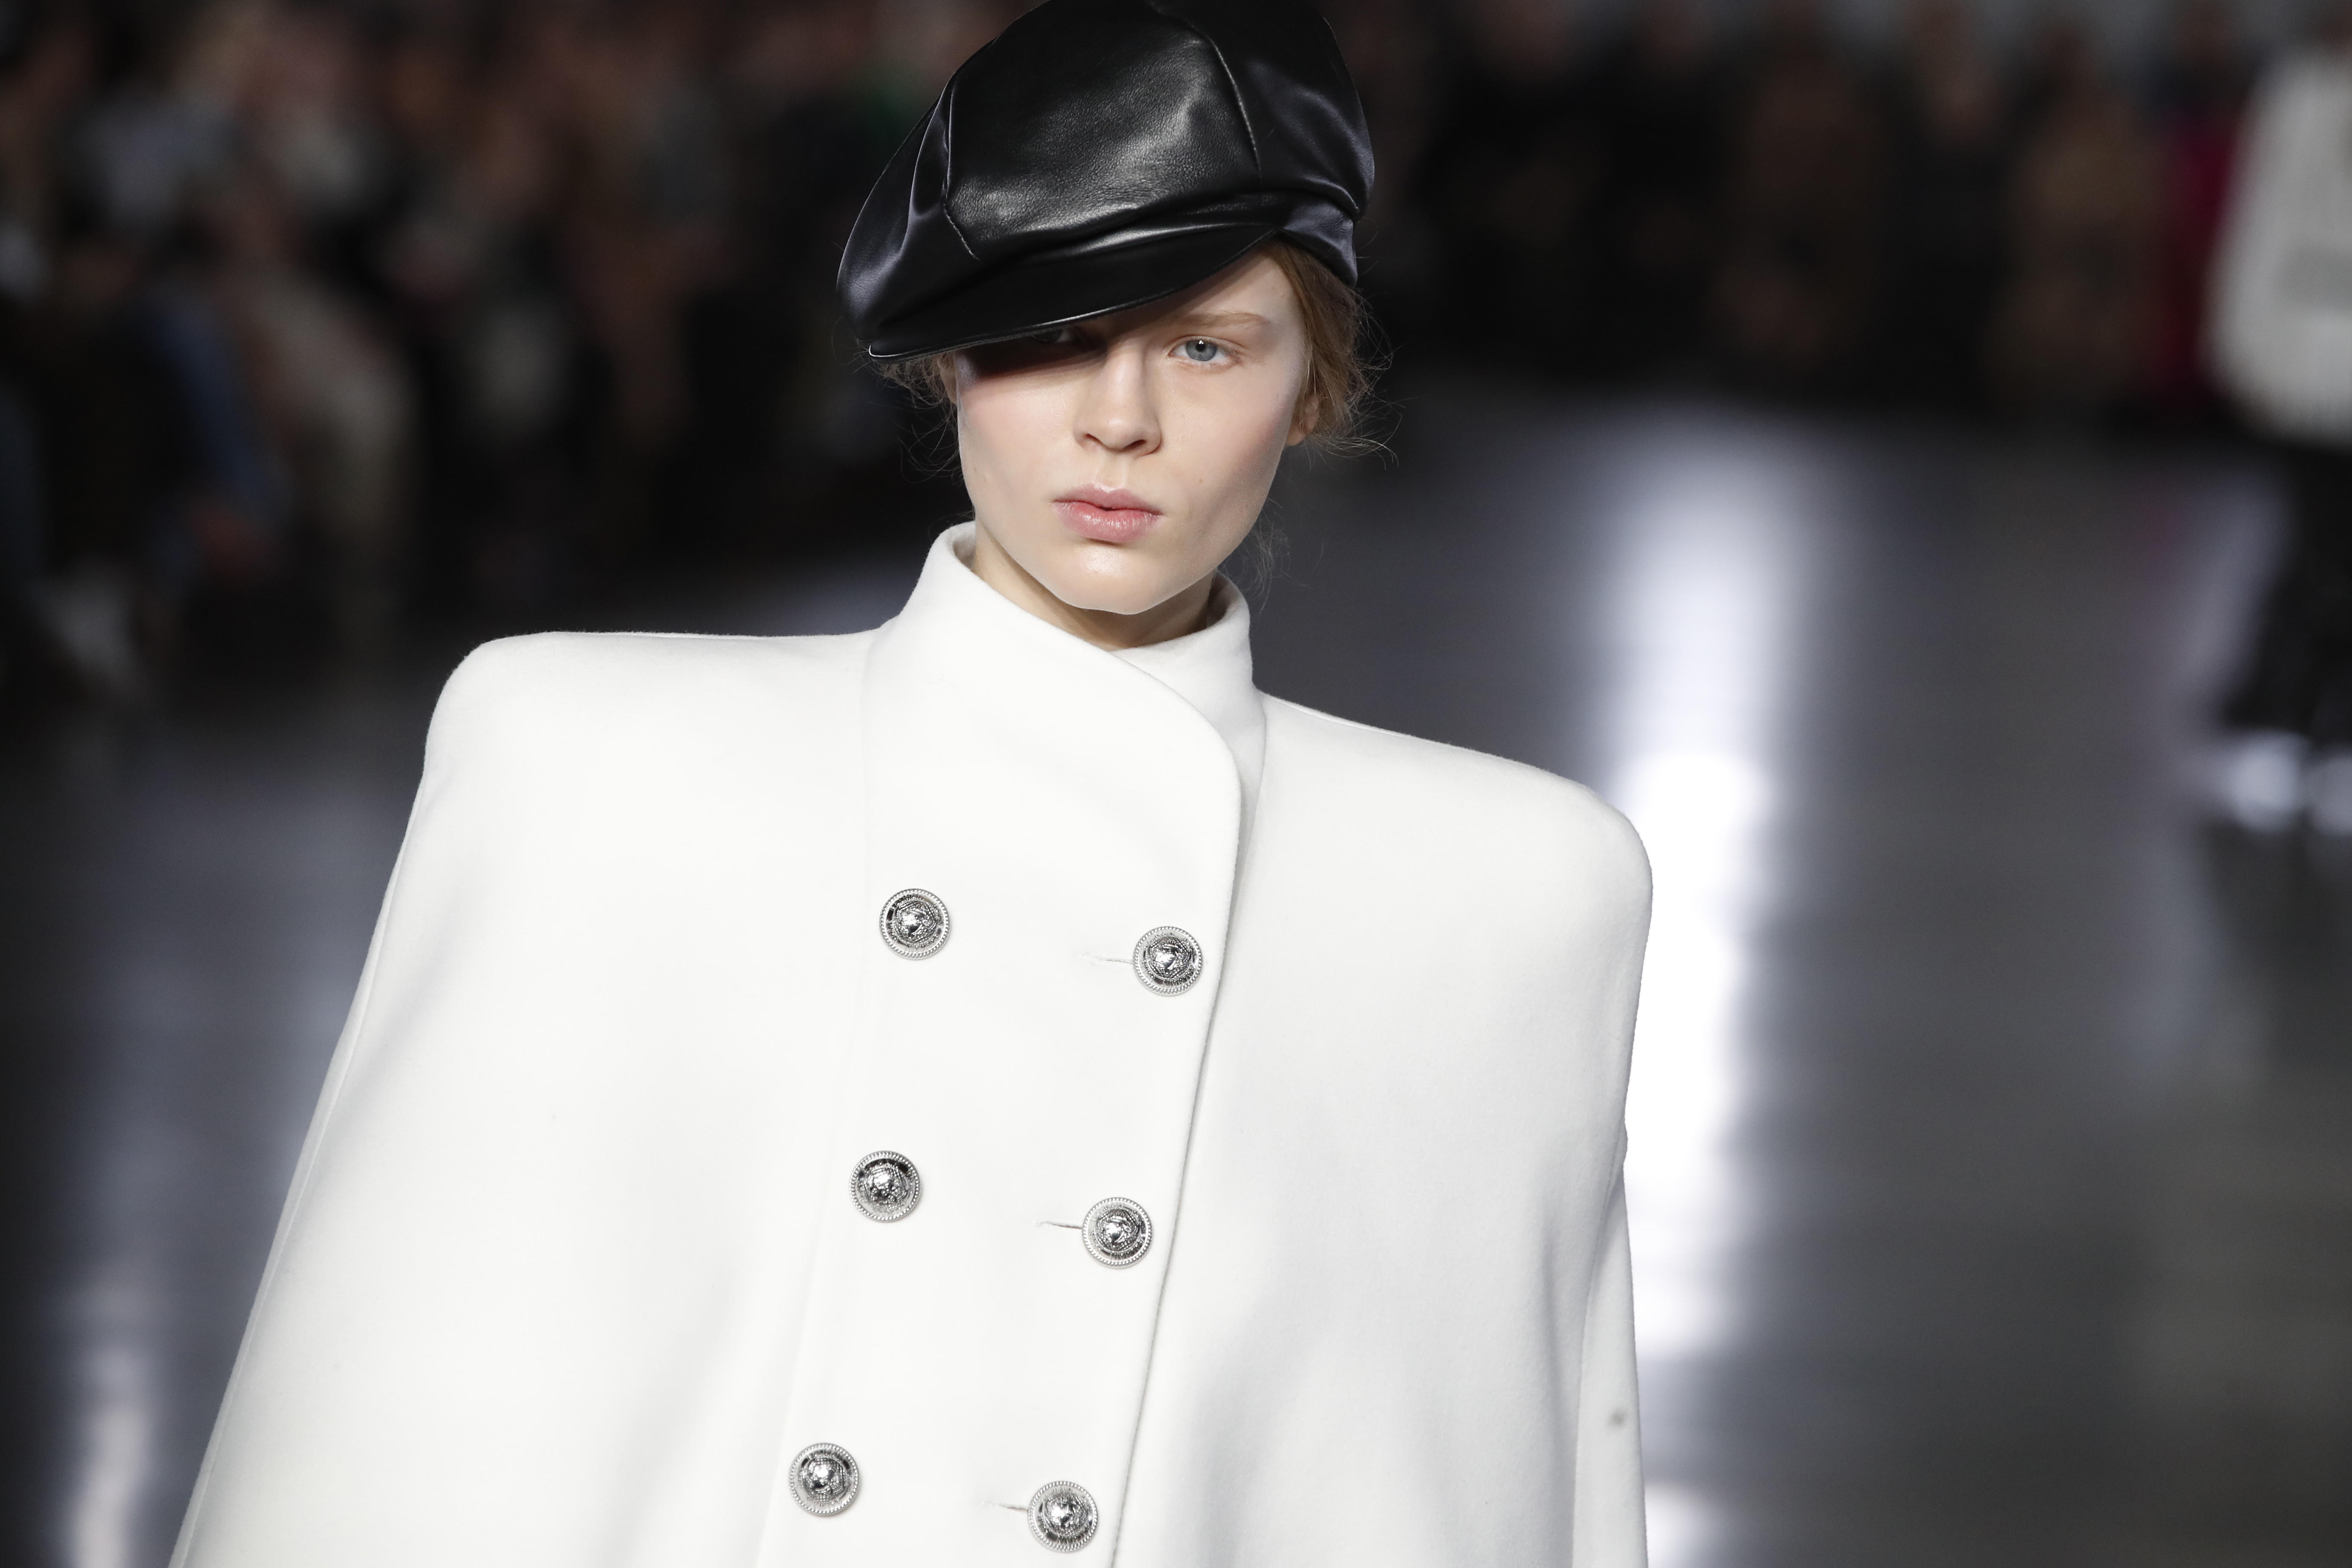 b85472bde8012 Paris Fashion Week designers really want you to update your hat ...